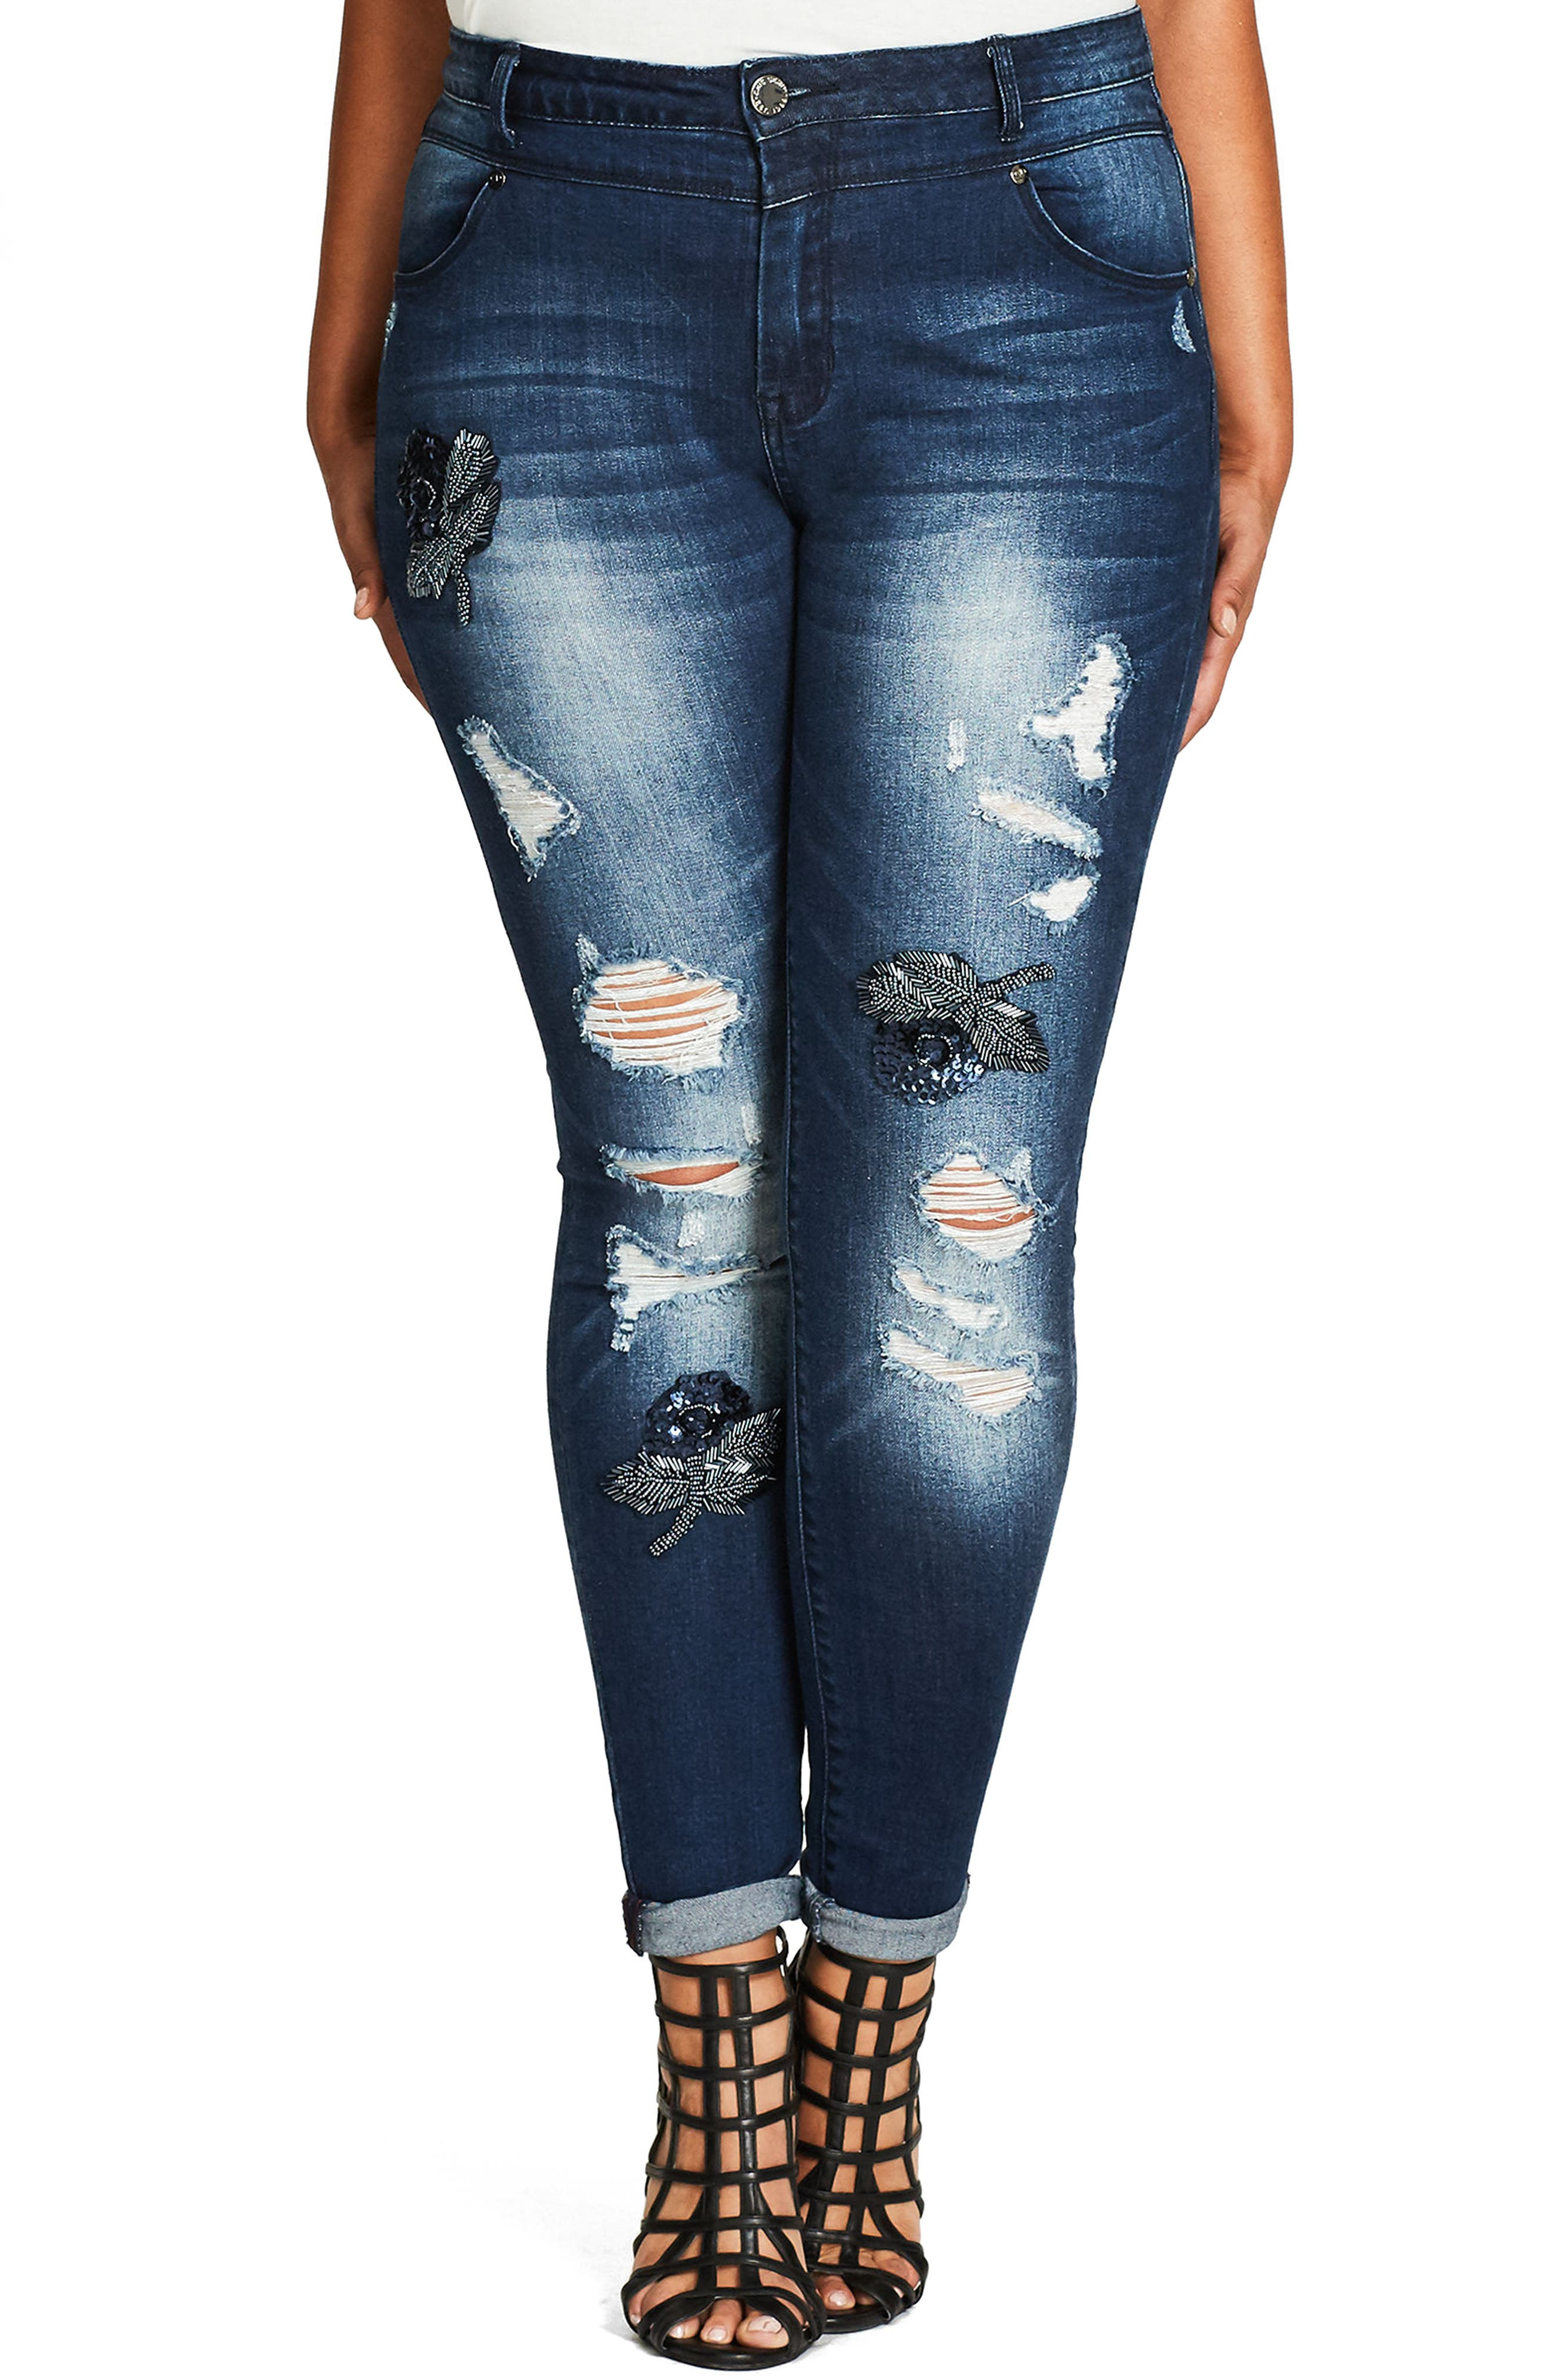 Alternate Image 1 Selected - City Chic Embellished Destroyed Skinny Jeans (Plus Size)